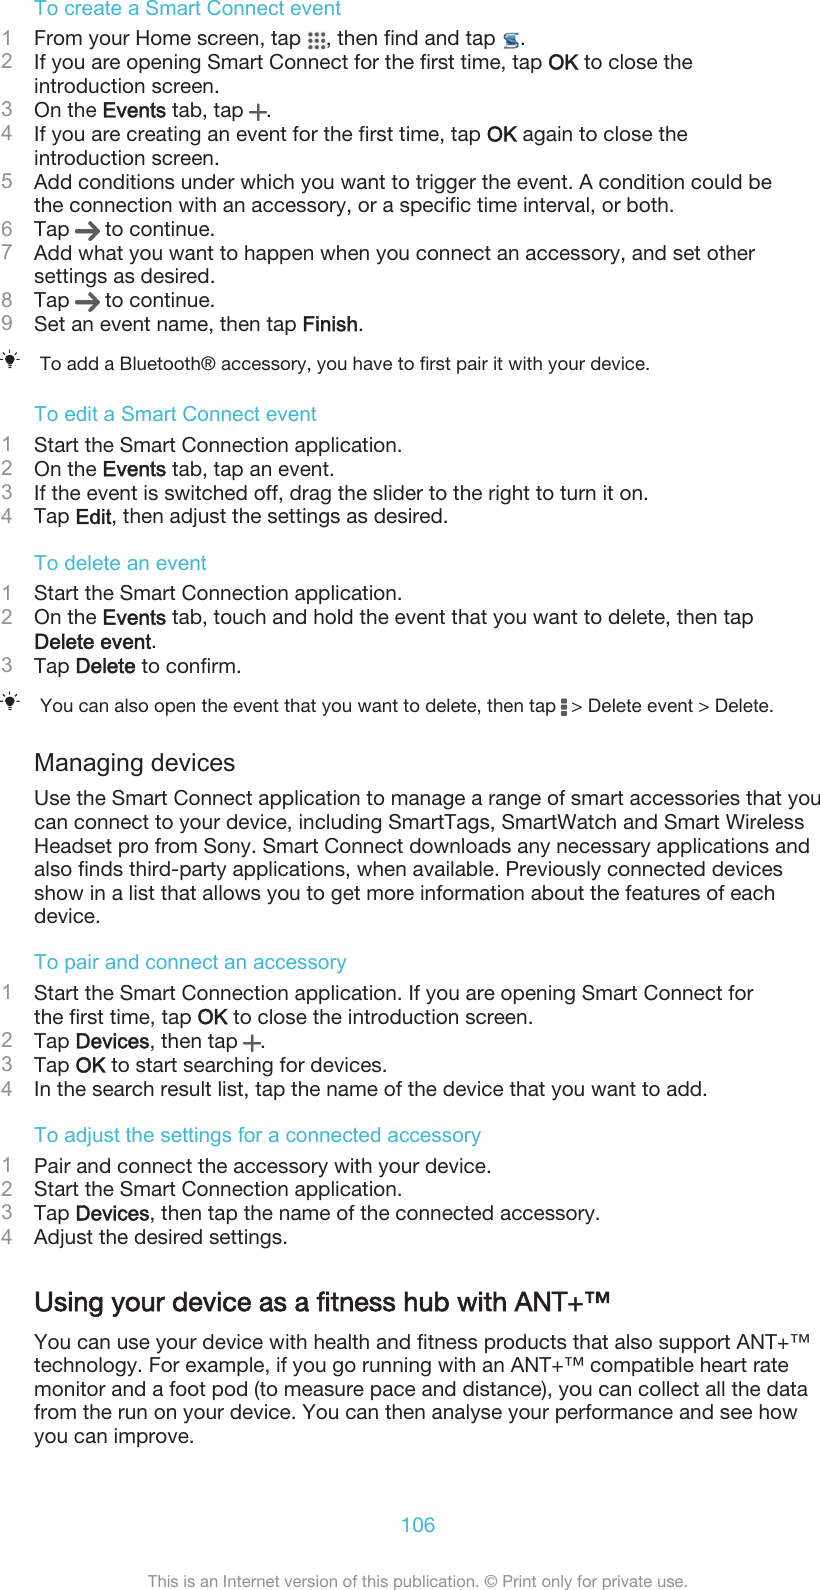 Sony Xperia T3 User Guide And Ation Manual